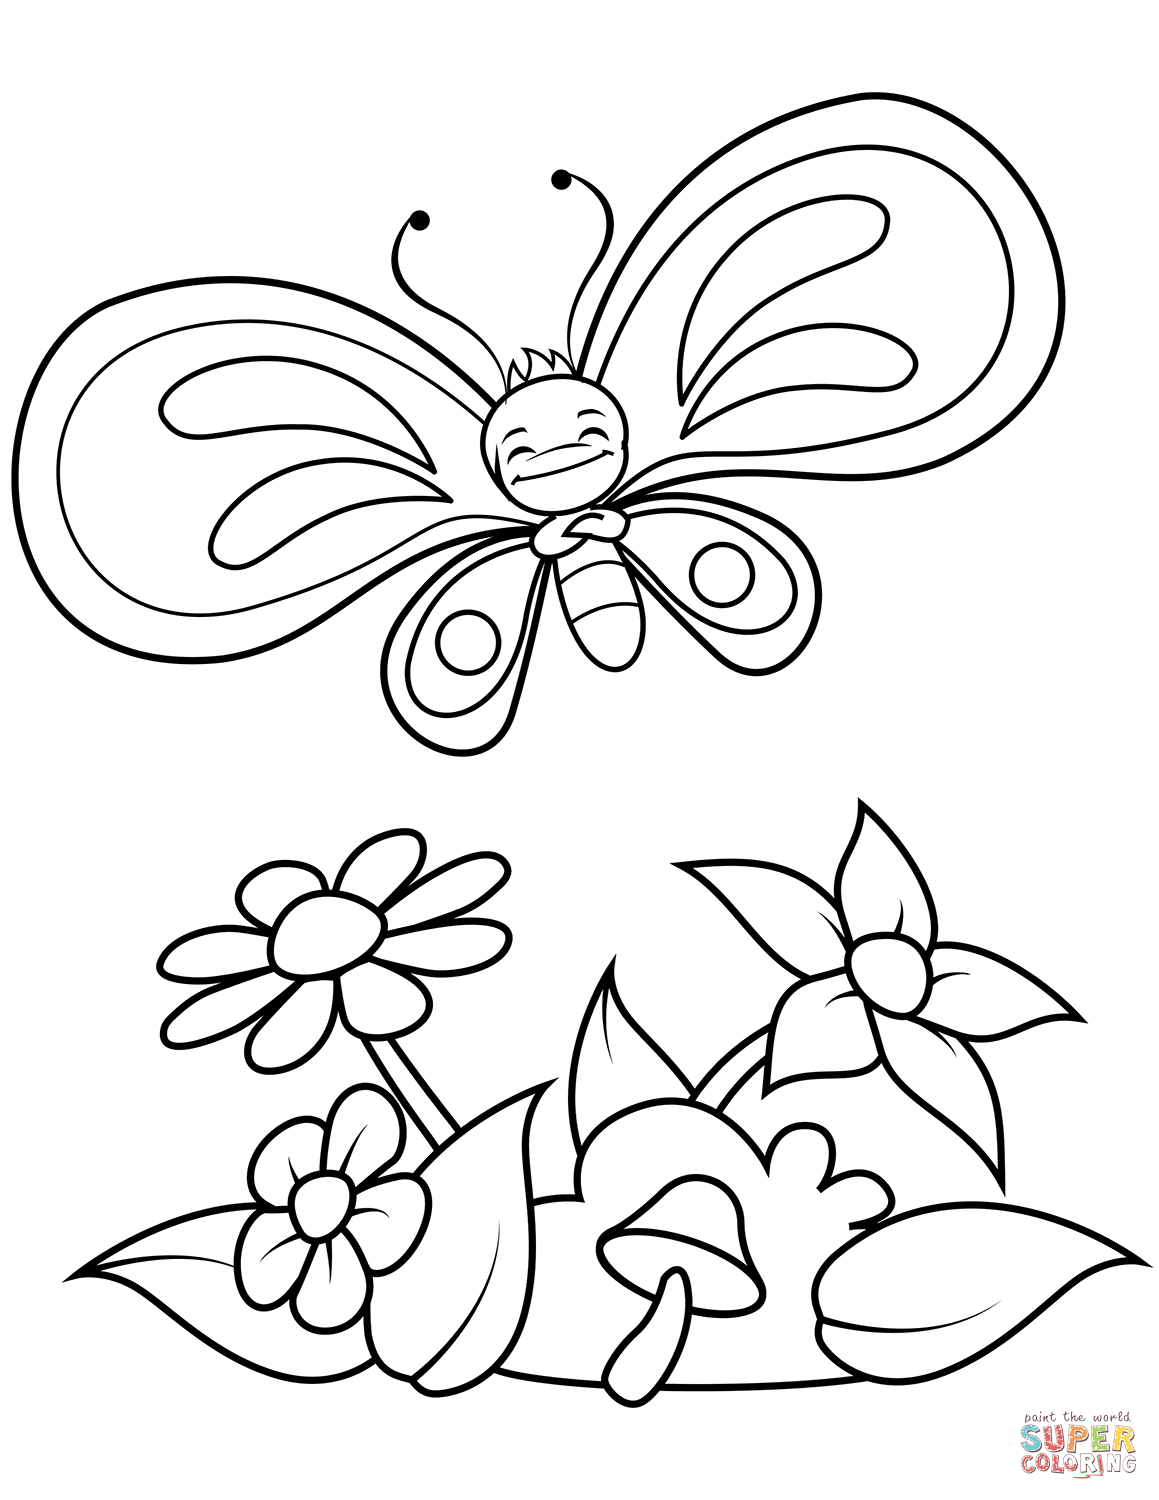 Funny Butterfly Boy Flies Over Flowers And Mushroom